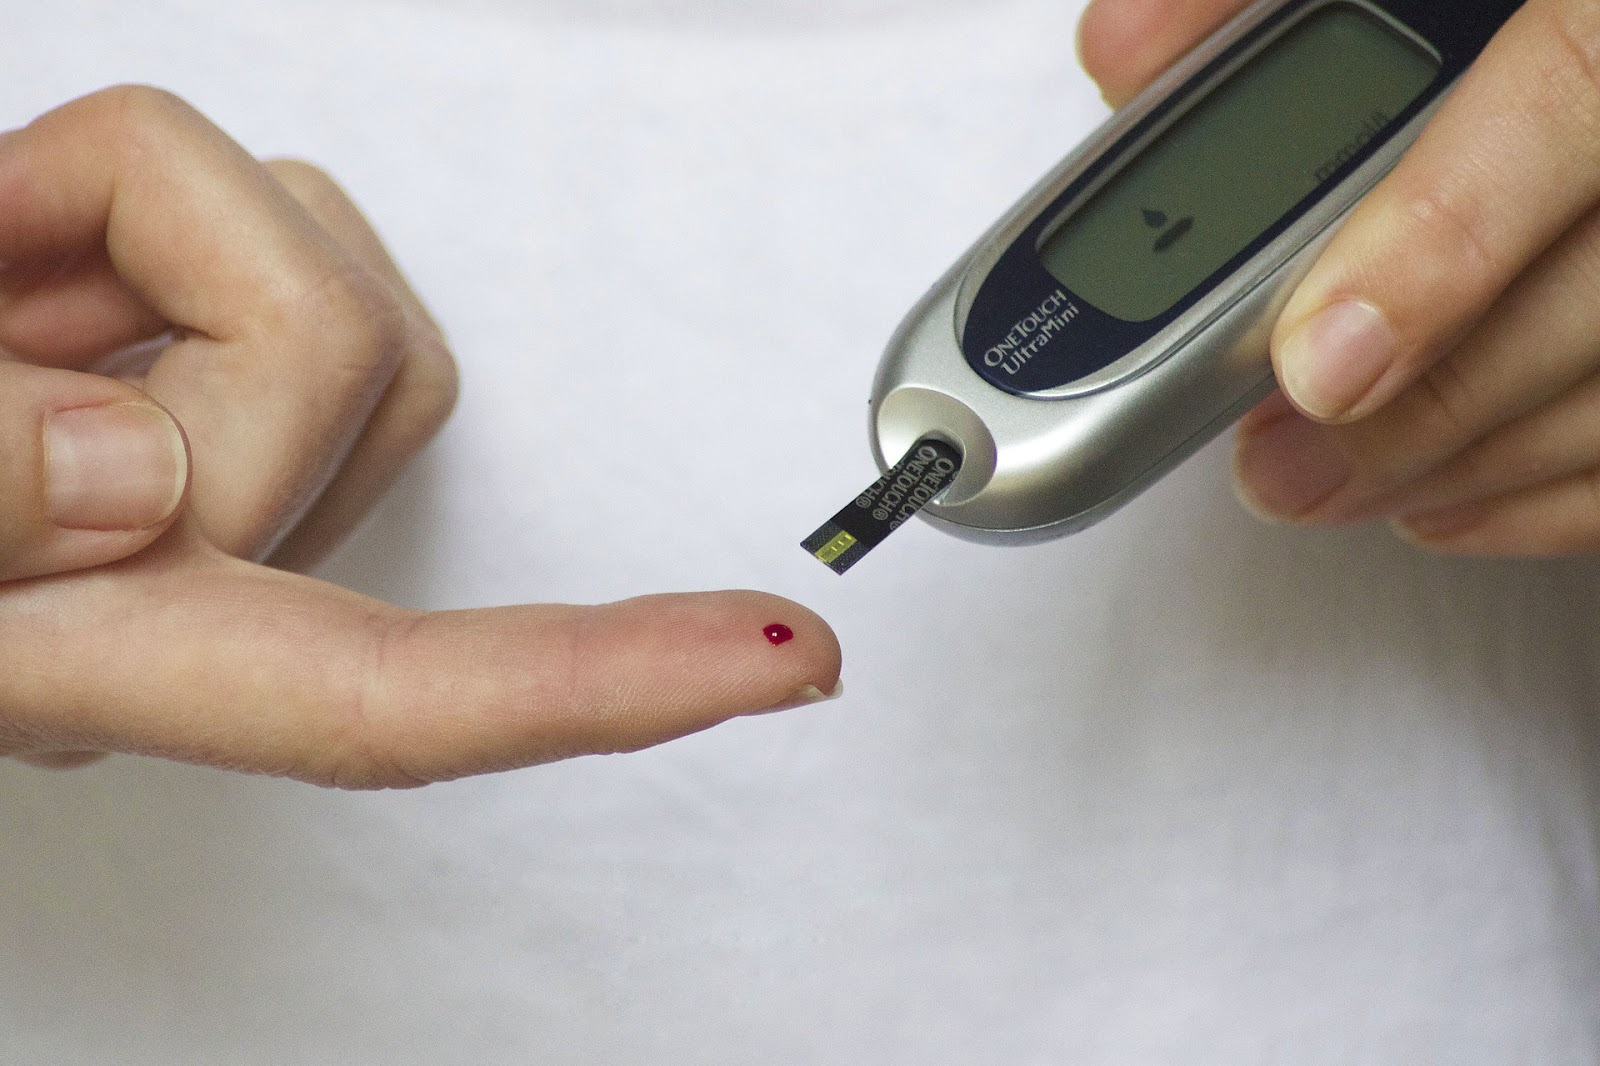 A person testing the blood sugar levels